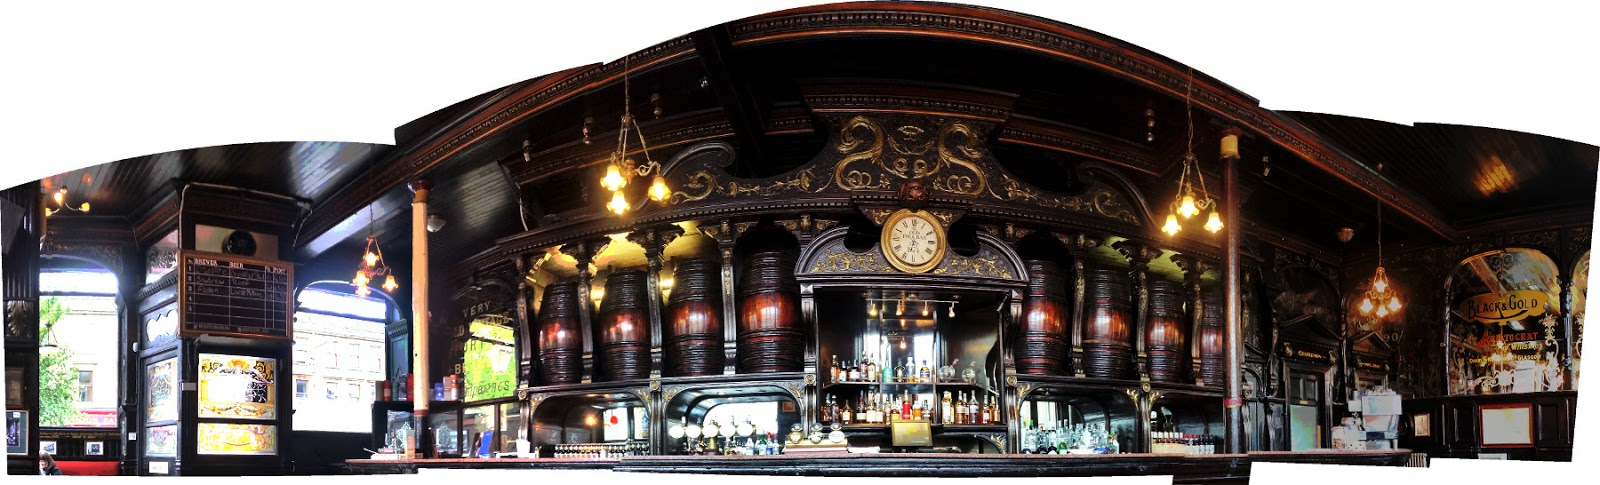 Old Toll Bar,GLasgow